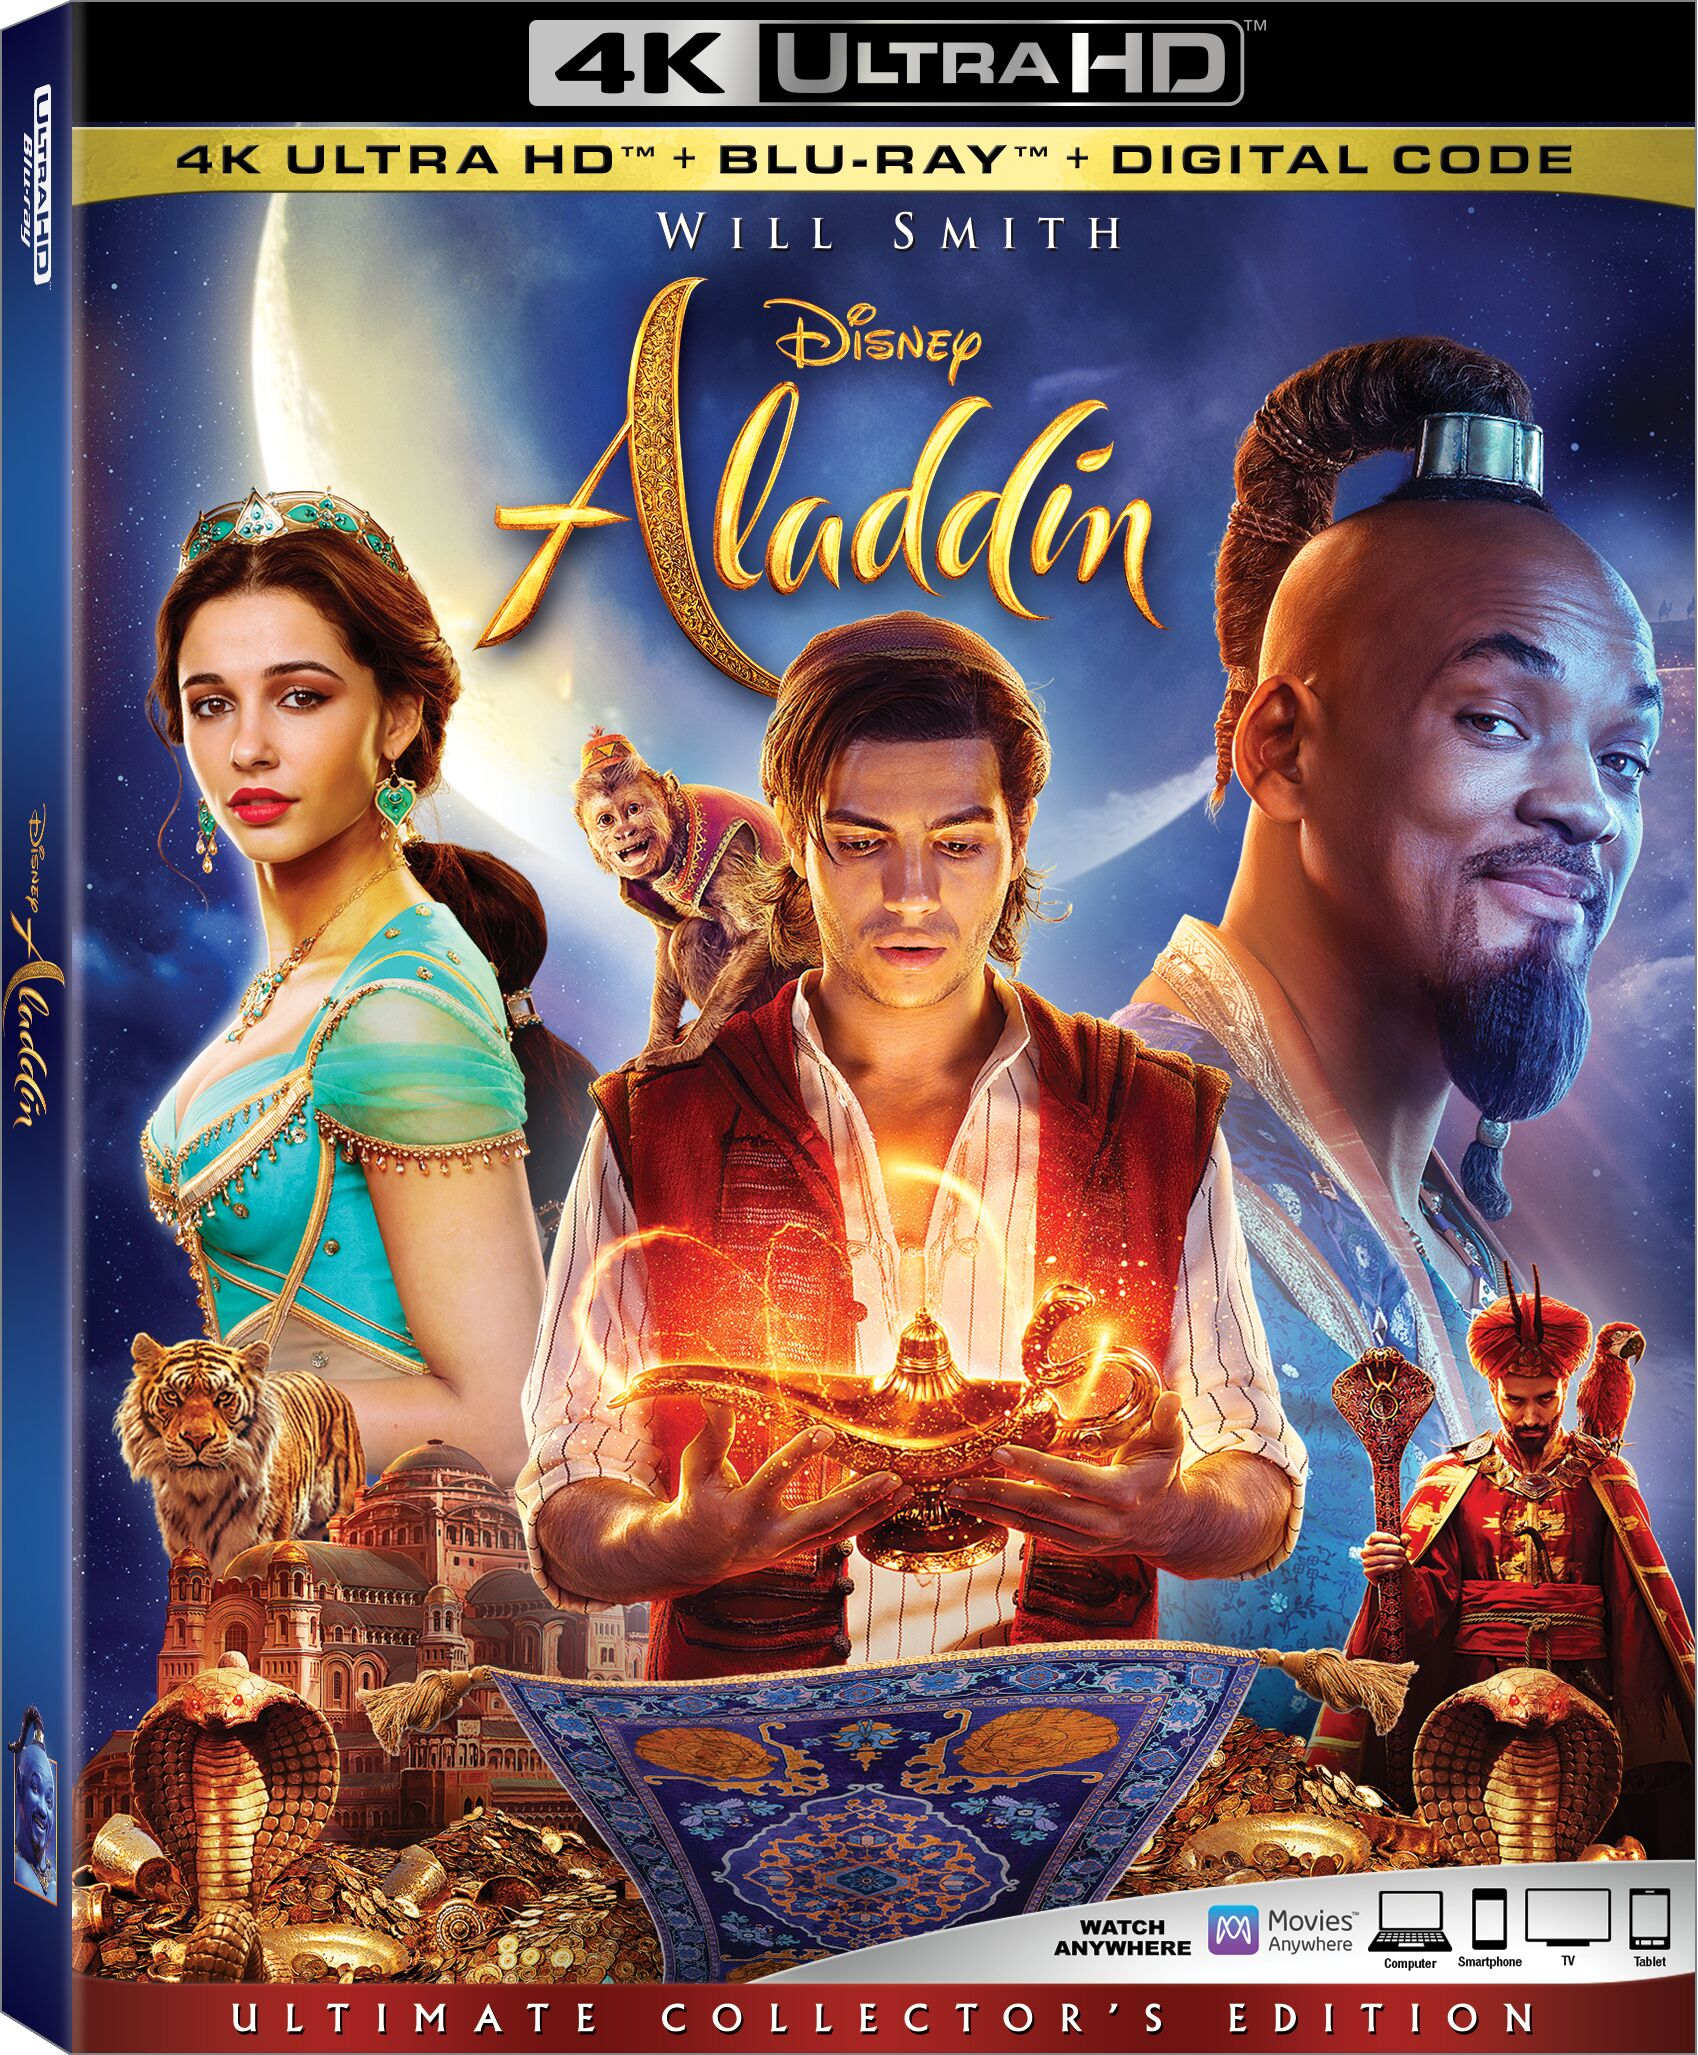 Disney's New Live-Action Aladdin